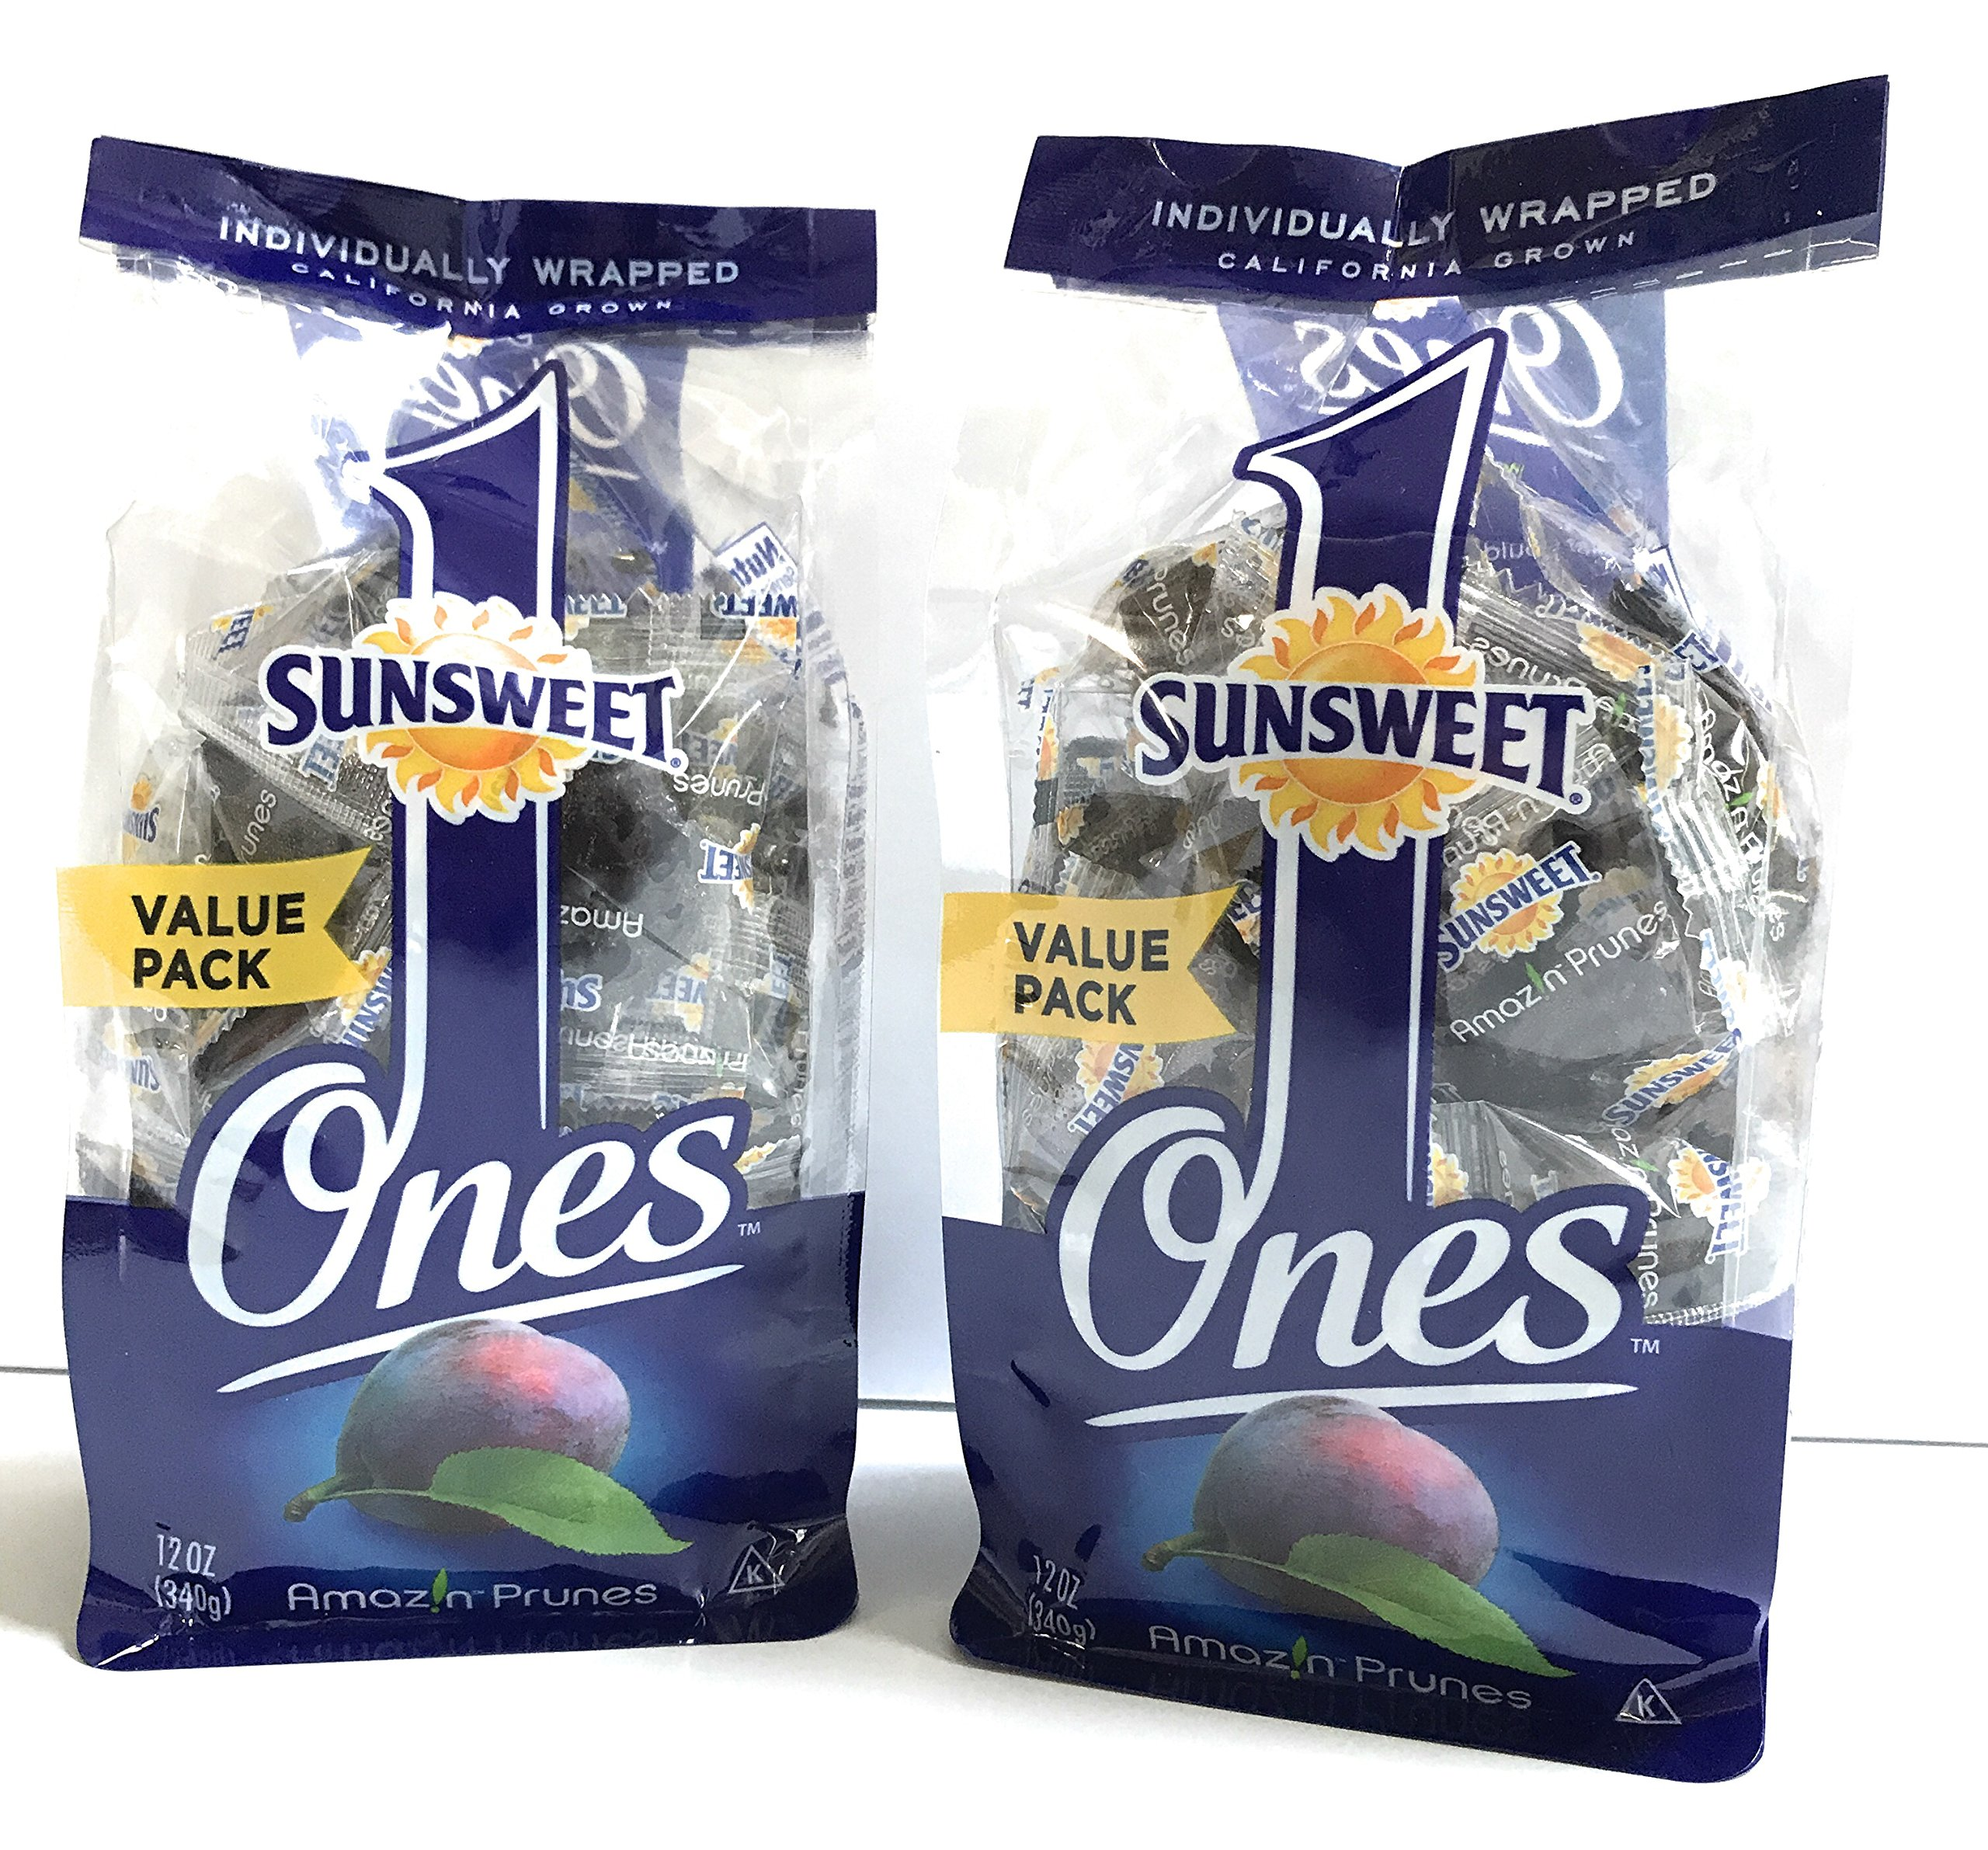 Sunsweet Individual Pitted Prunes Value Pack - 2 Packs (12 oz each) of Individually Wrapped Dried Prunes - Sweet, Delicious and a GREAT VALUE! by Sunsweet